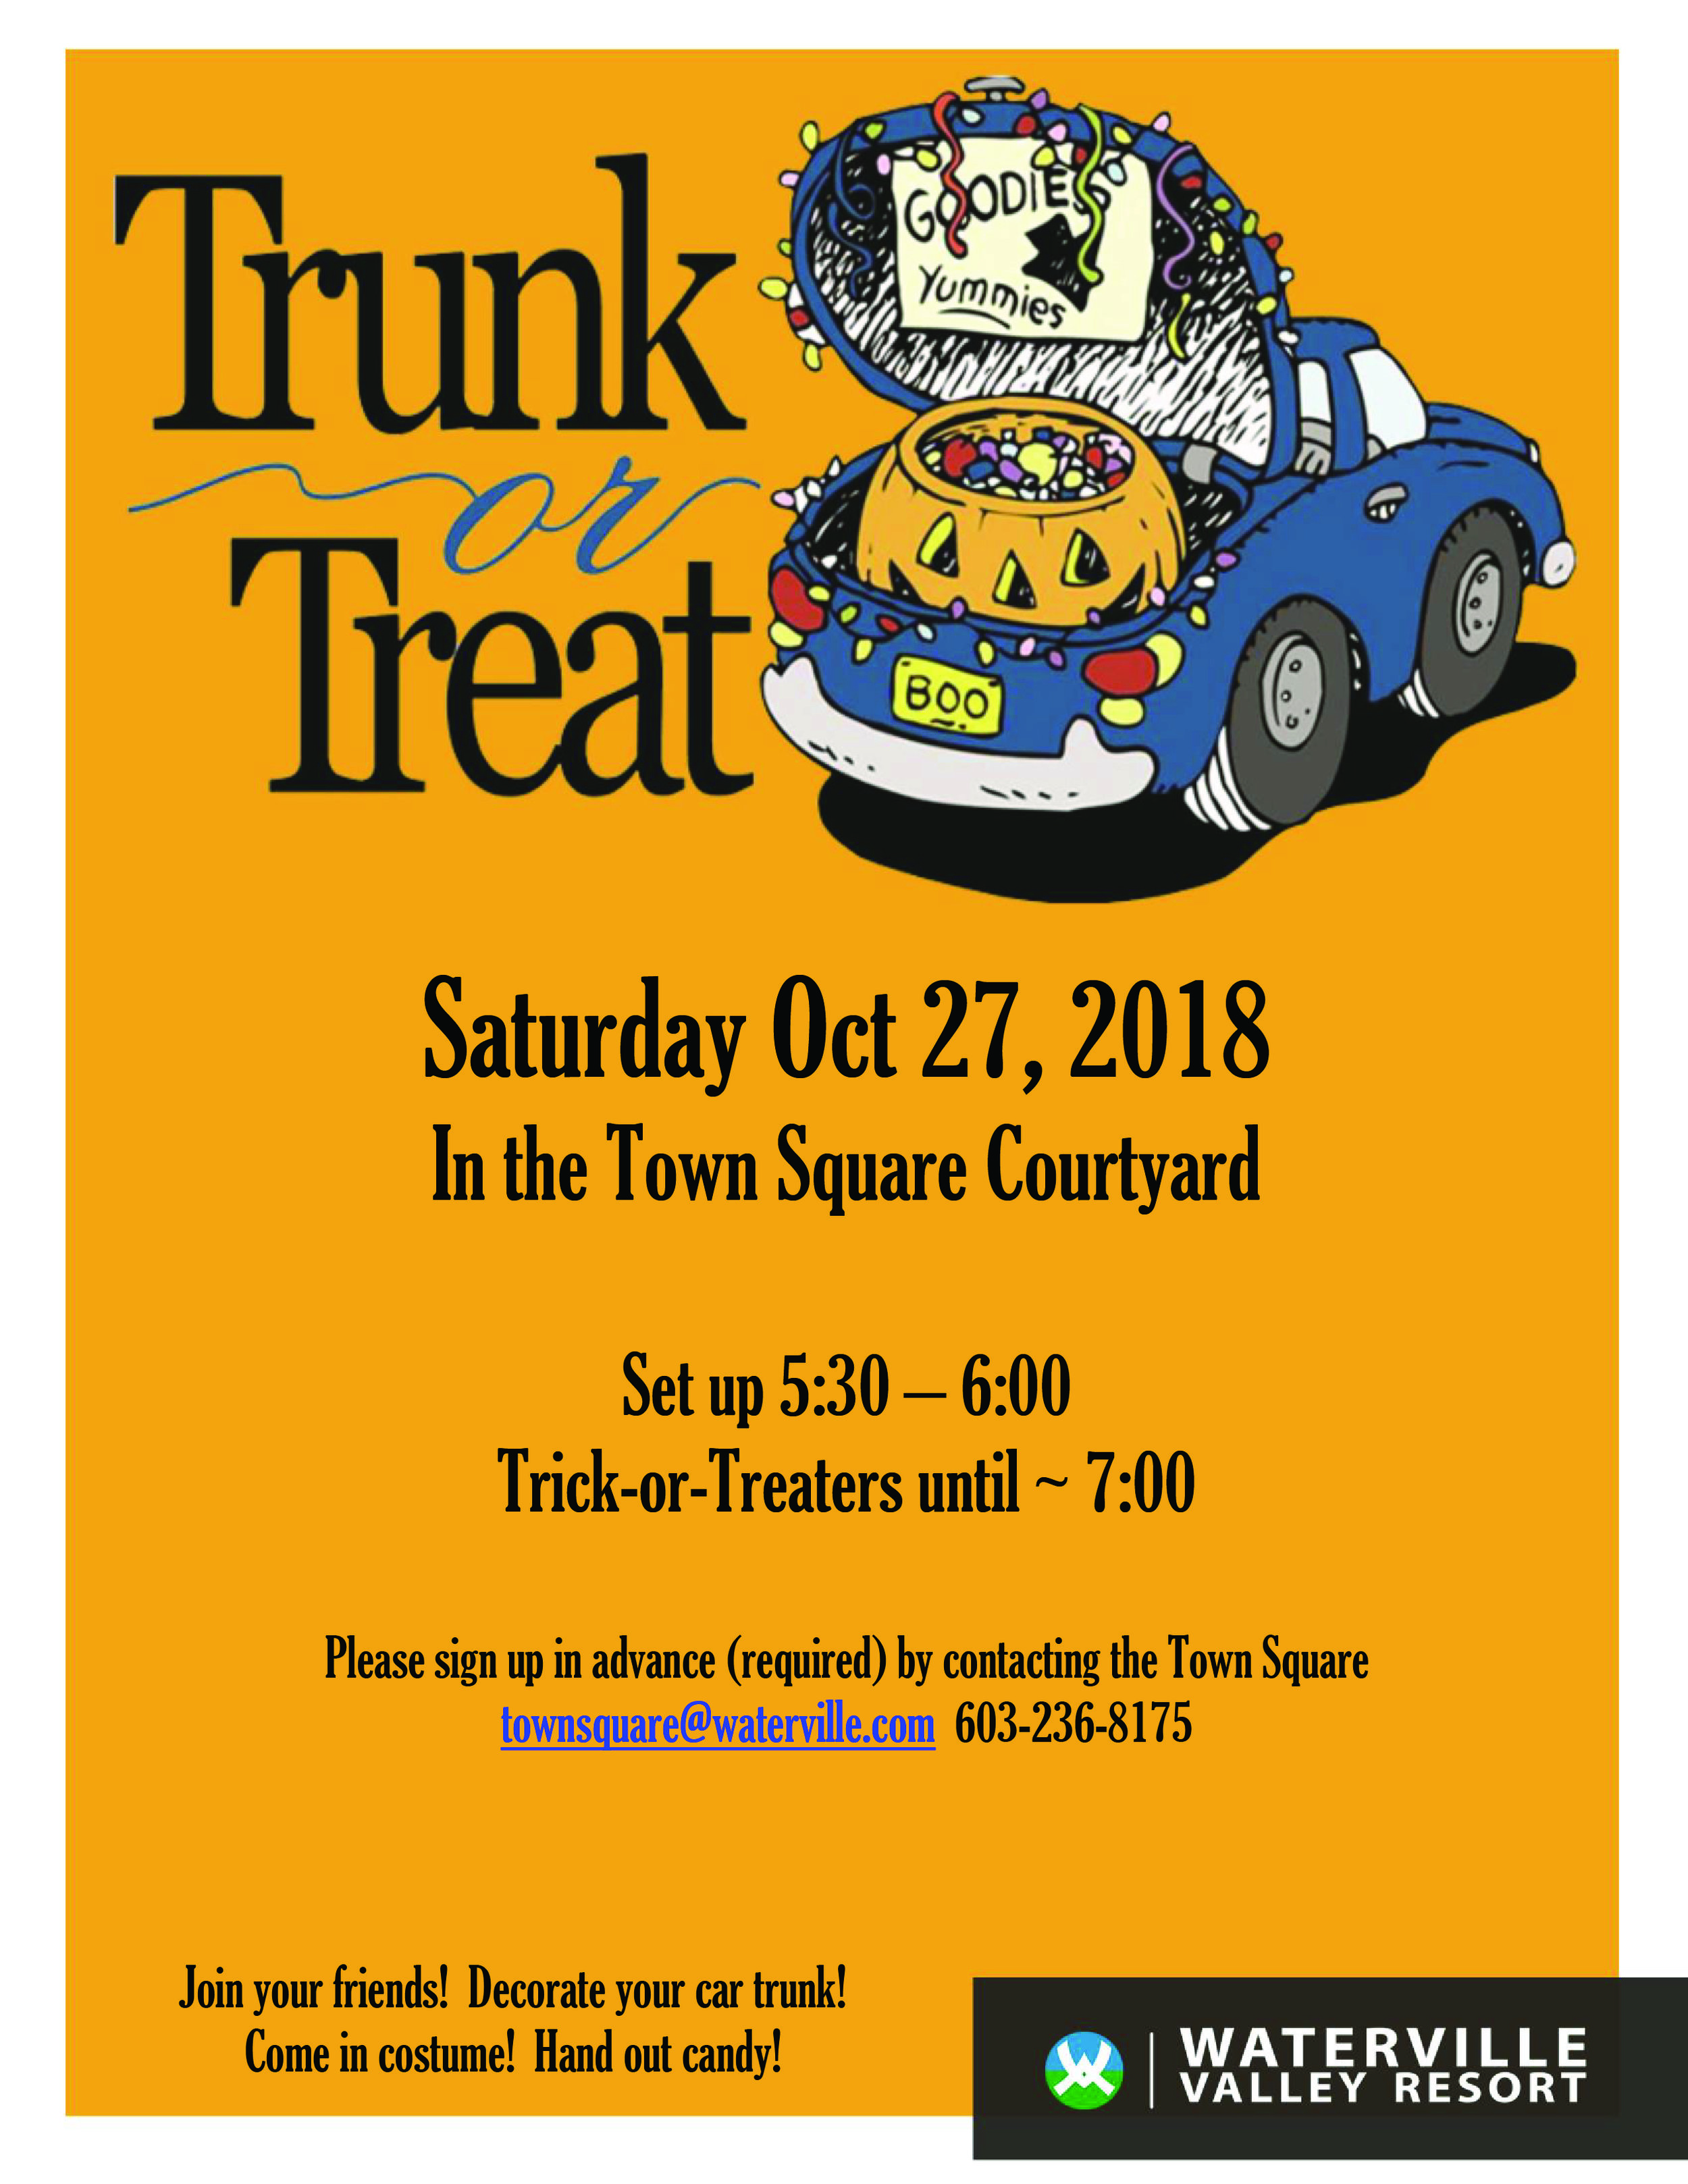 Trunk or Treat 2018 9.11-01.jpg